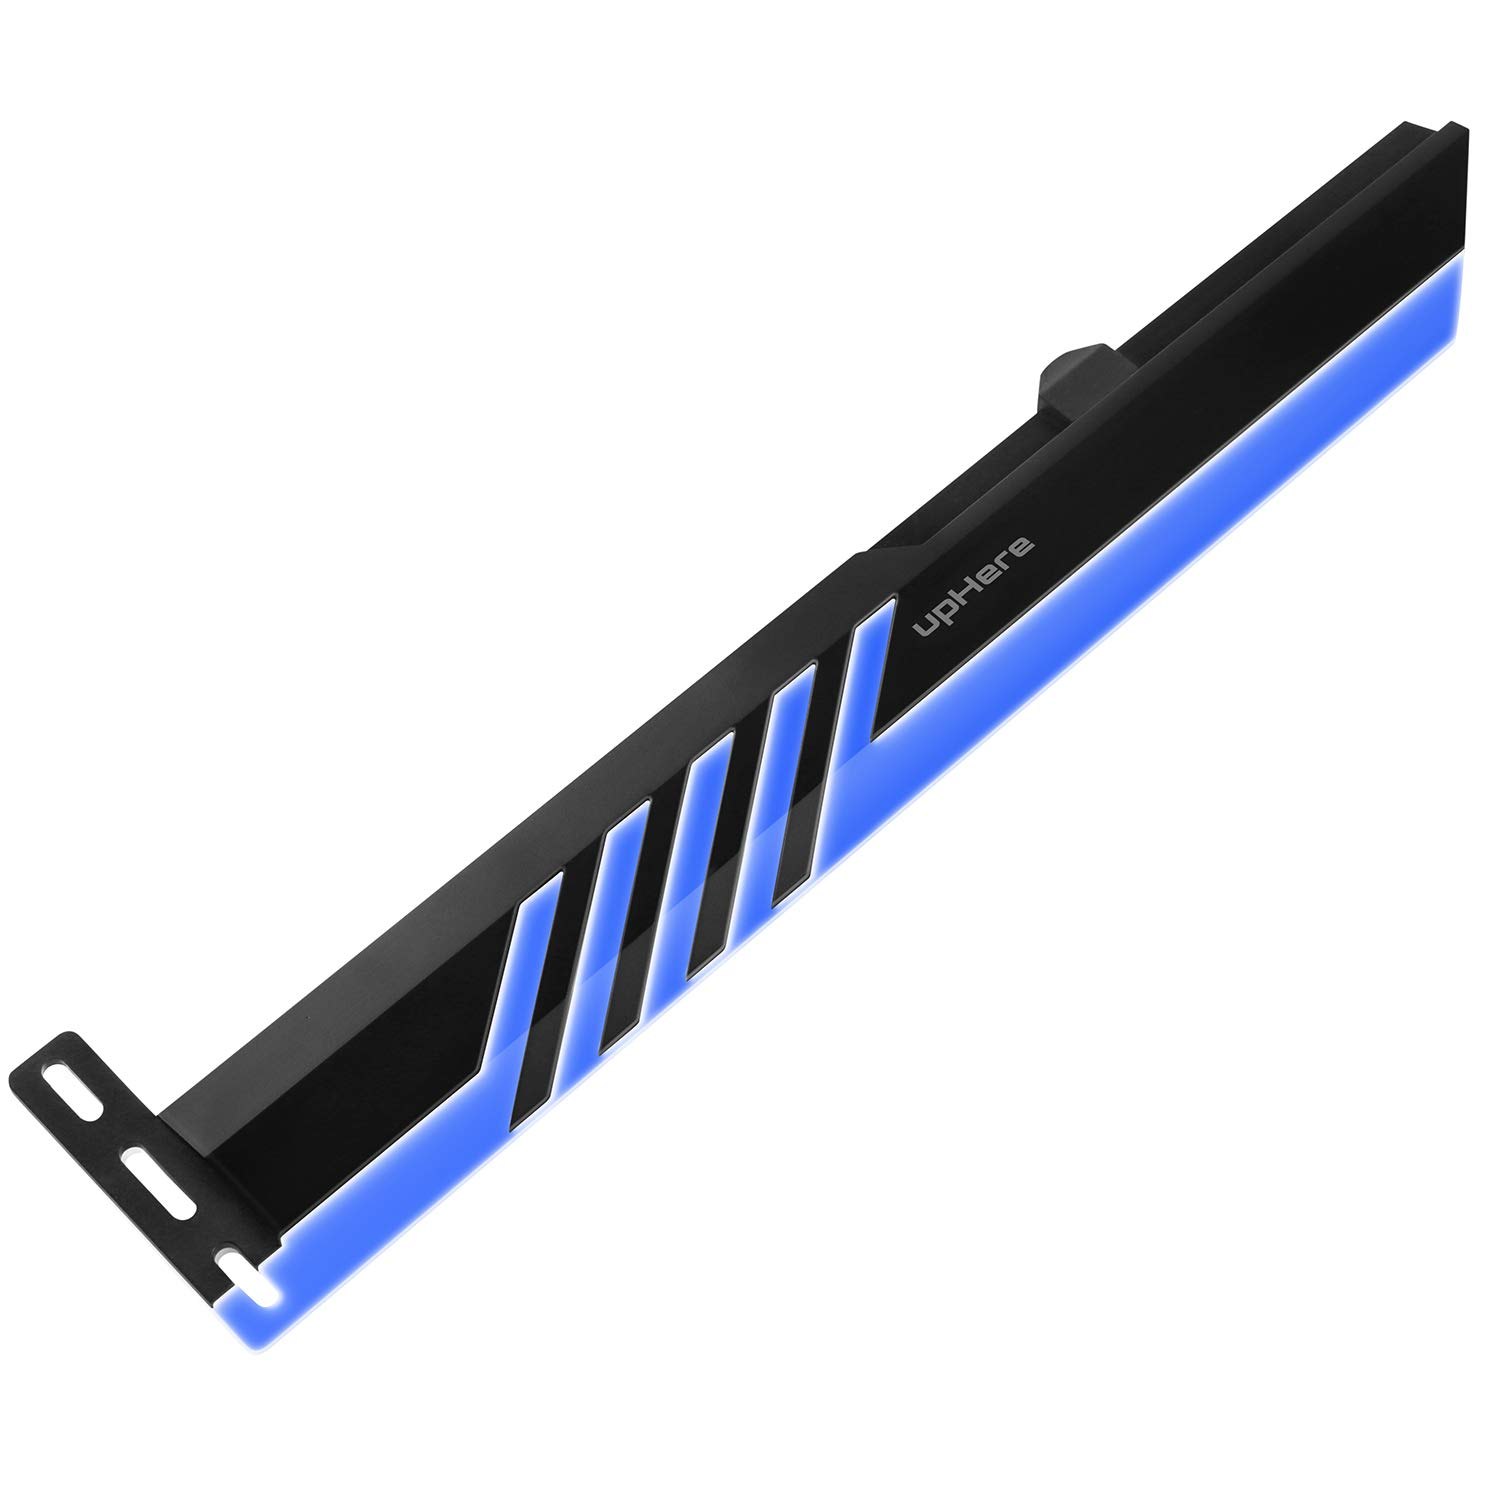 upHere Blue LED Graphics Card GPU Brace Support Video Card Sag Holder//Holster Bracket,Single or Dual Slot Cards GL28BE